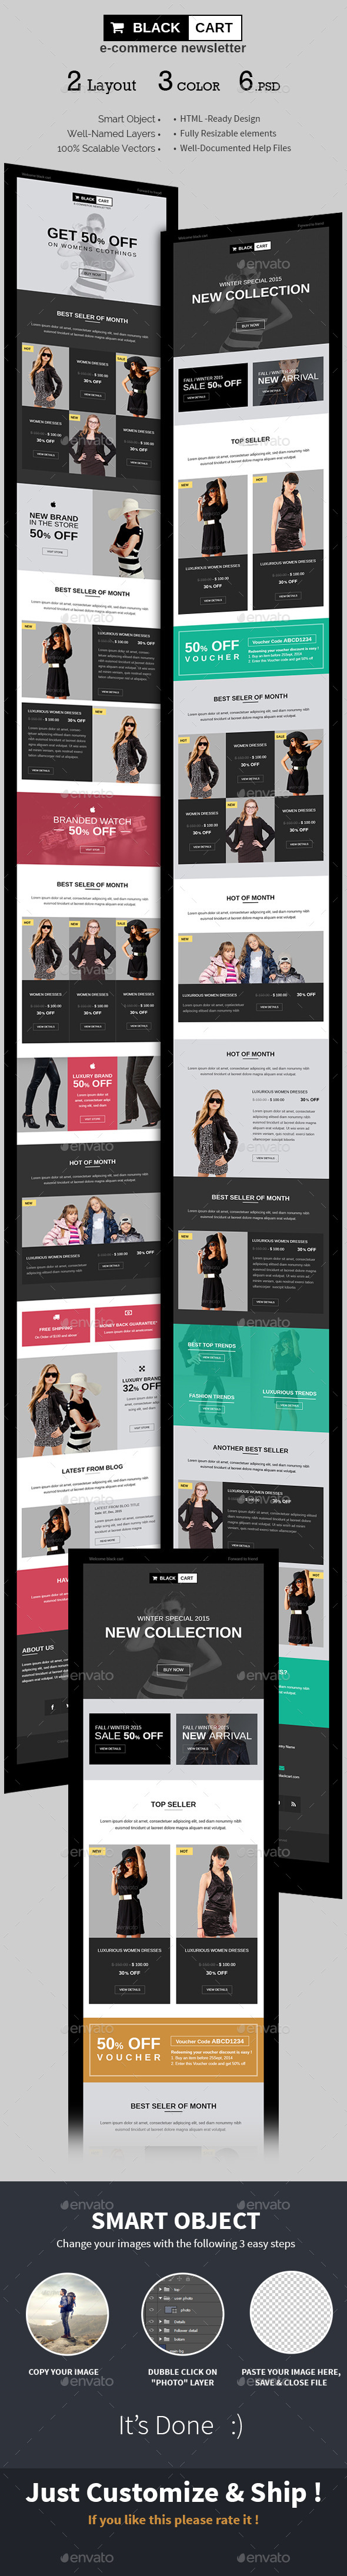 GraphicRiver E-commerce Special Offers Newsletter PSD Template 10002416